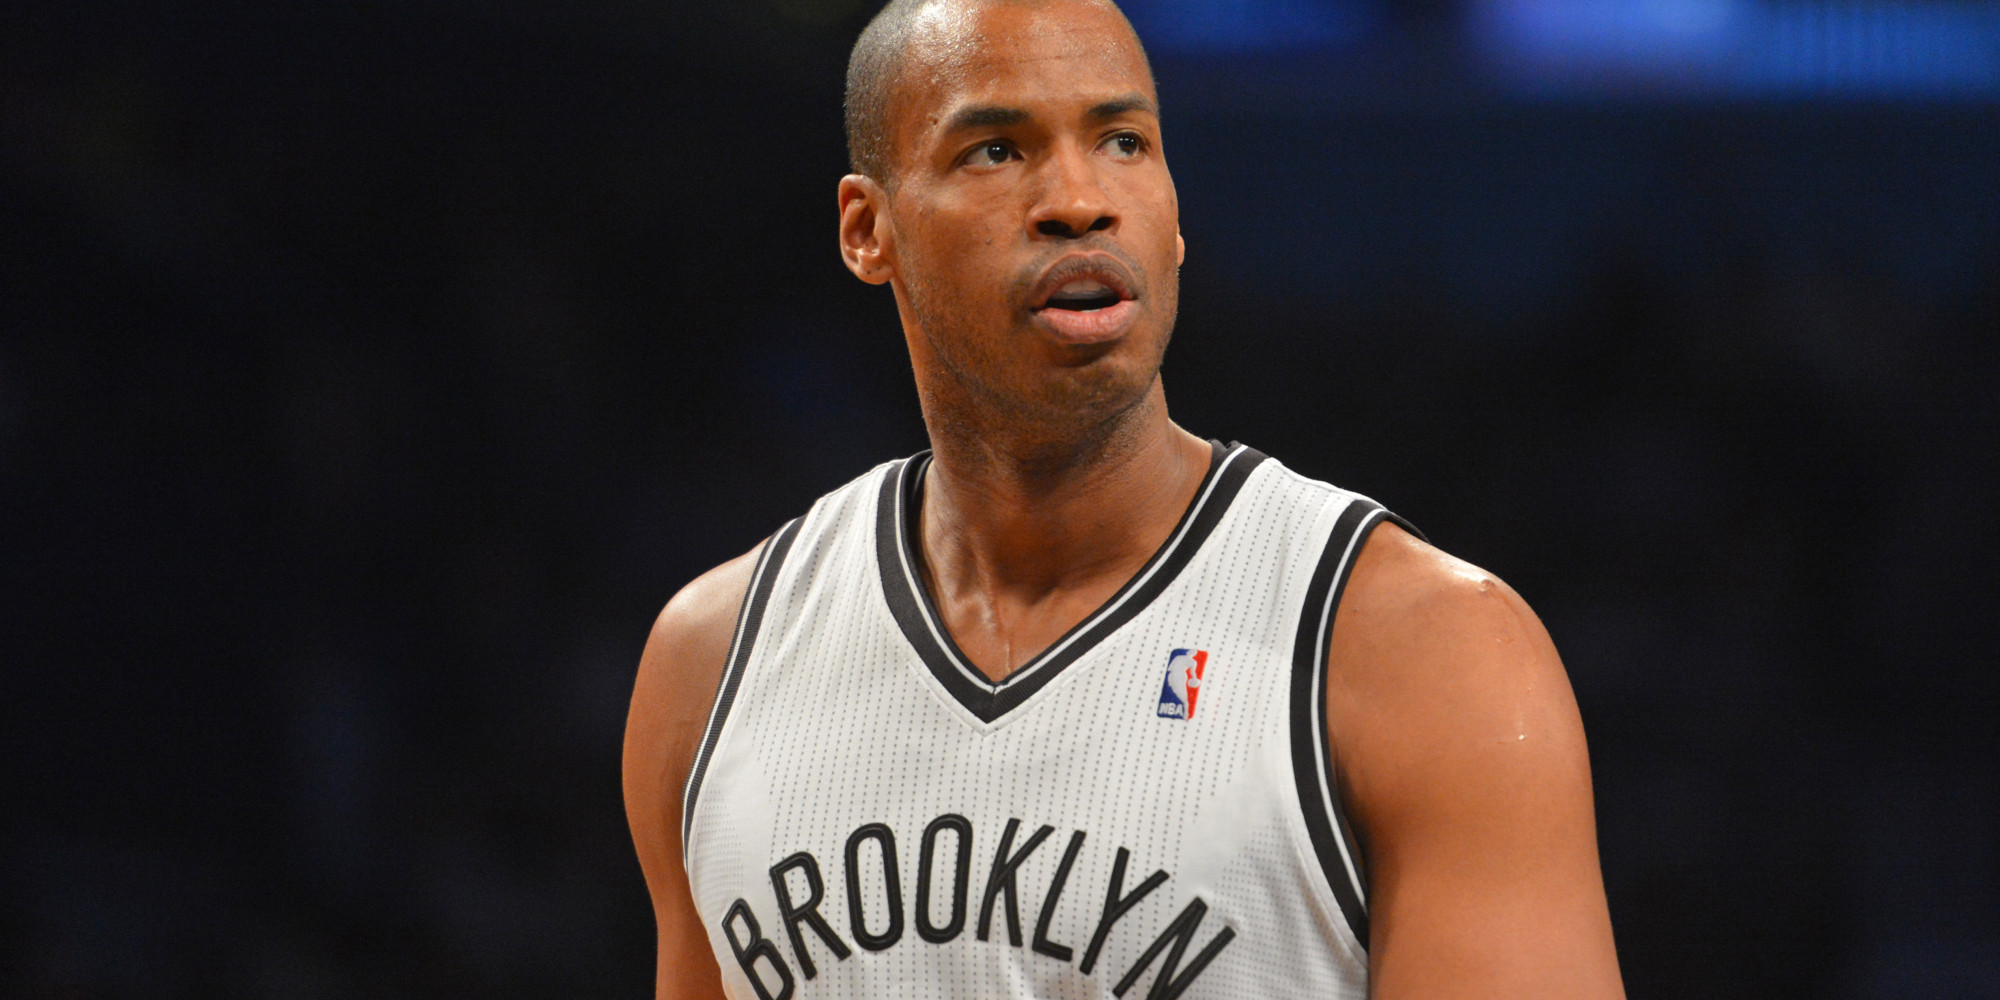 BROOKLYN, NY - MARCH 10: Jason Collins #98 of the Brooklyn Nets during a game against the Toronto Raptors on March 10, 2014 at the Barclays Center in Brooklyn, New York. NOTE TO USER: User expressly acknowledges and agrees that, by downloading and or using this photograph, User is consenting to the terms and conditions of the Getty Images License Agreement. Mandatory Copyright Notice: Copyright 2014 NBAE (Photo by Jesse D. Garrabrant/NBAE via Getty Images)